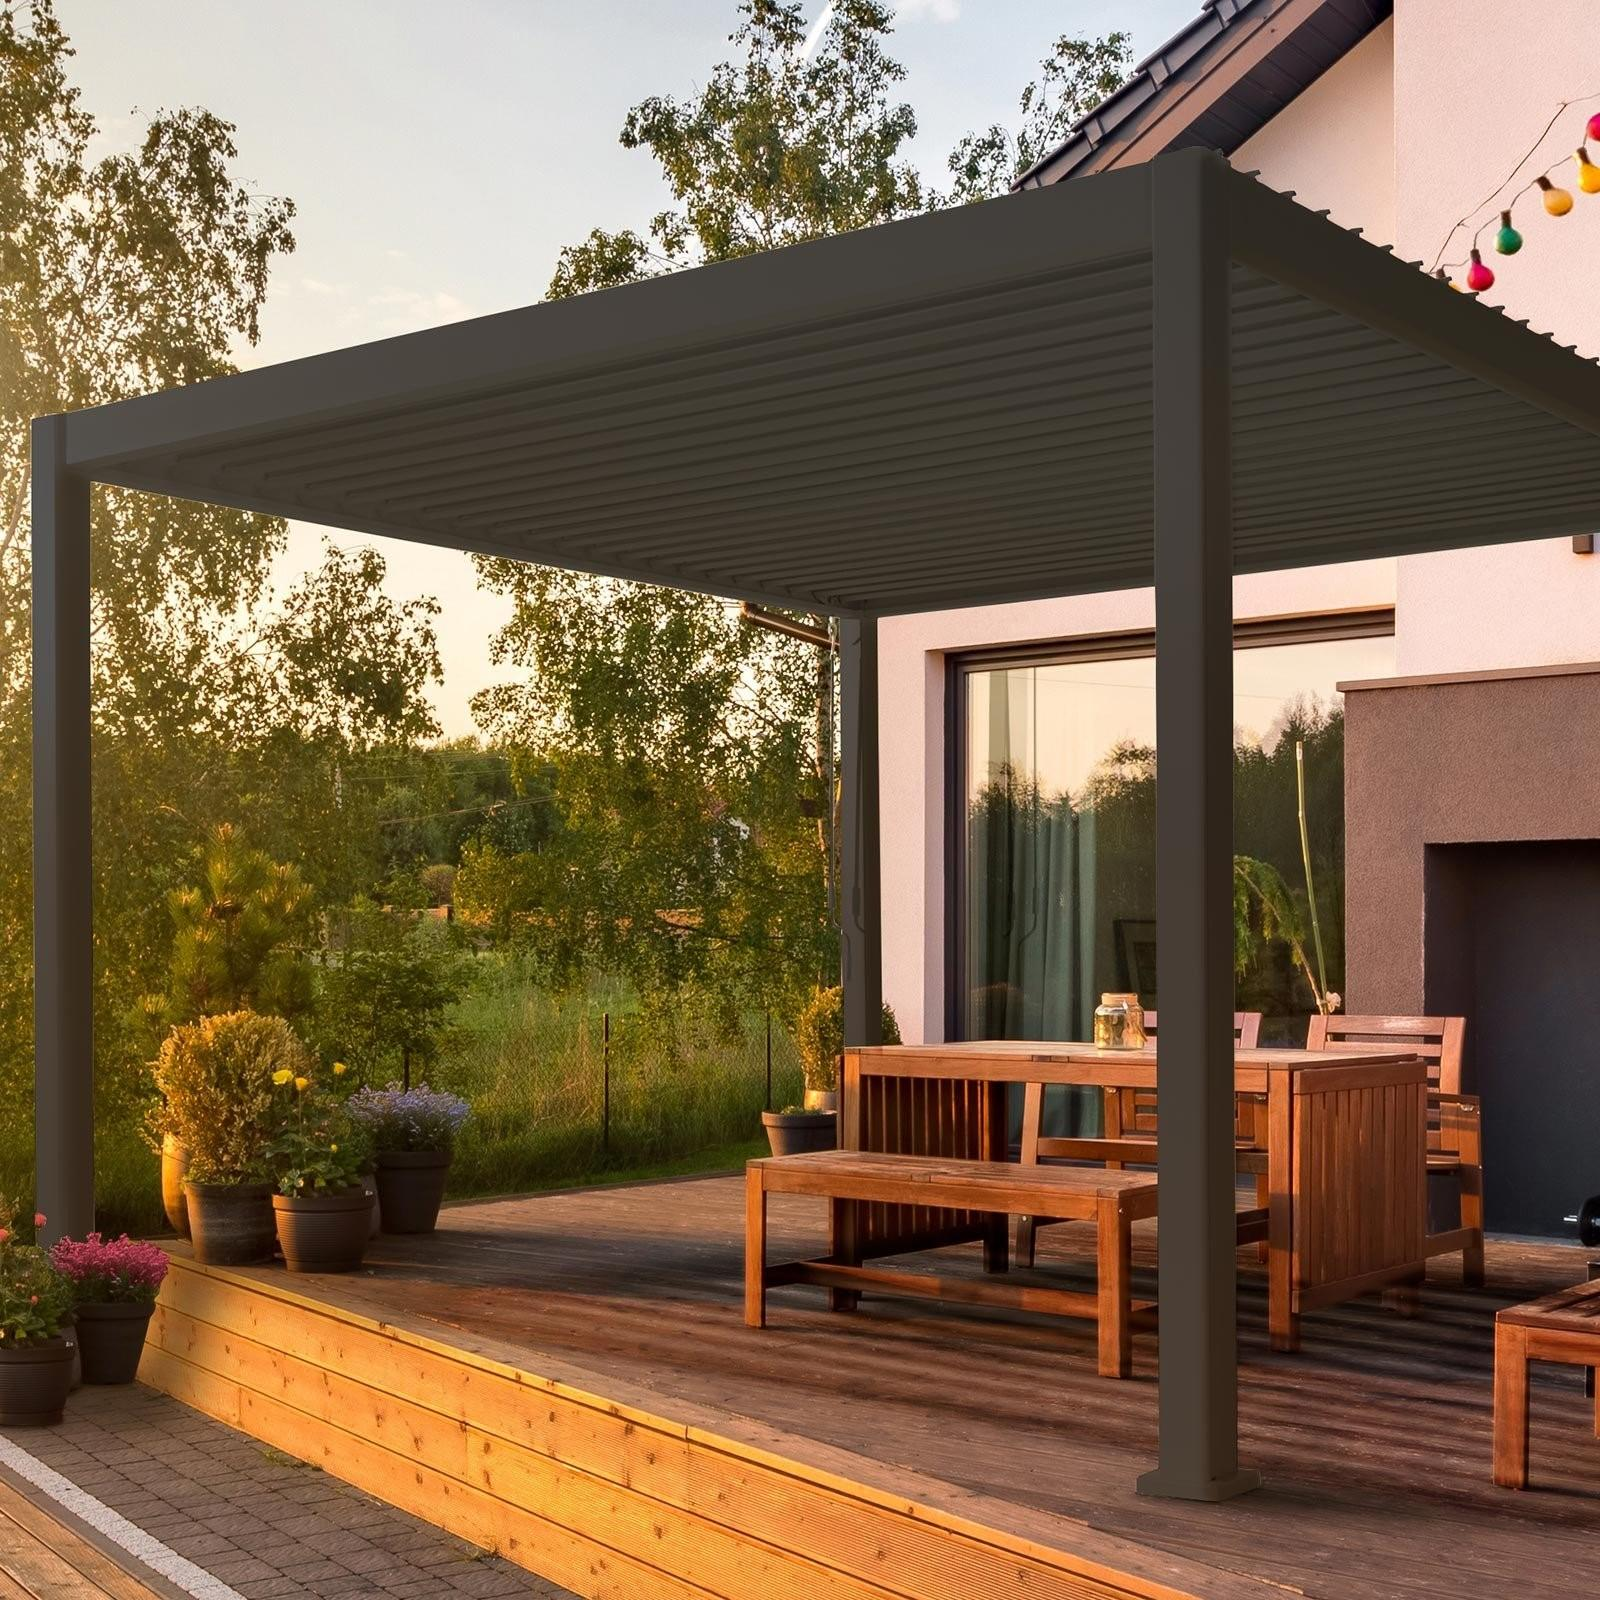 3 x 4 m modern garden gazebo or pergola in grey aluminium with slatted roof